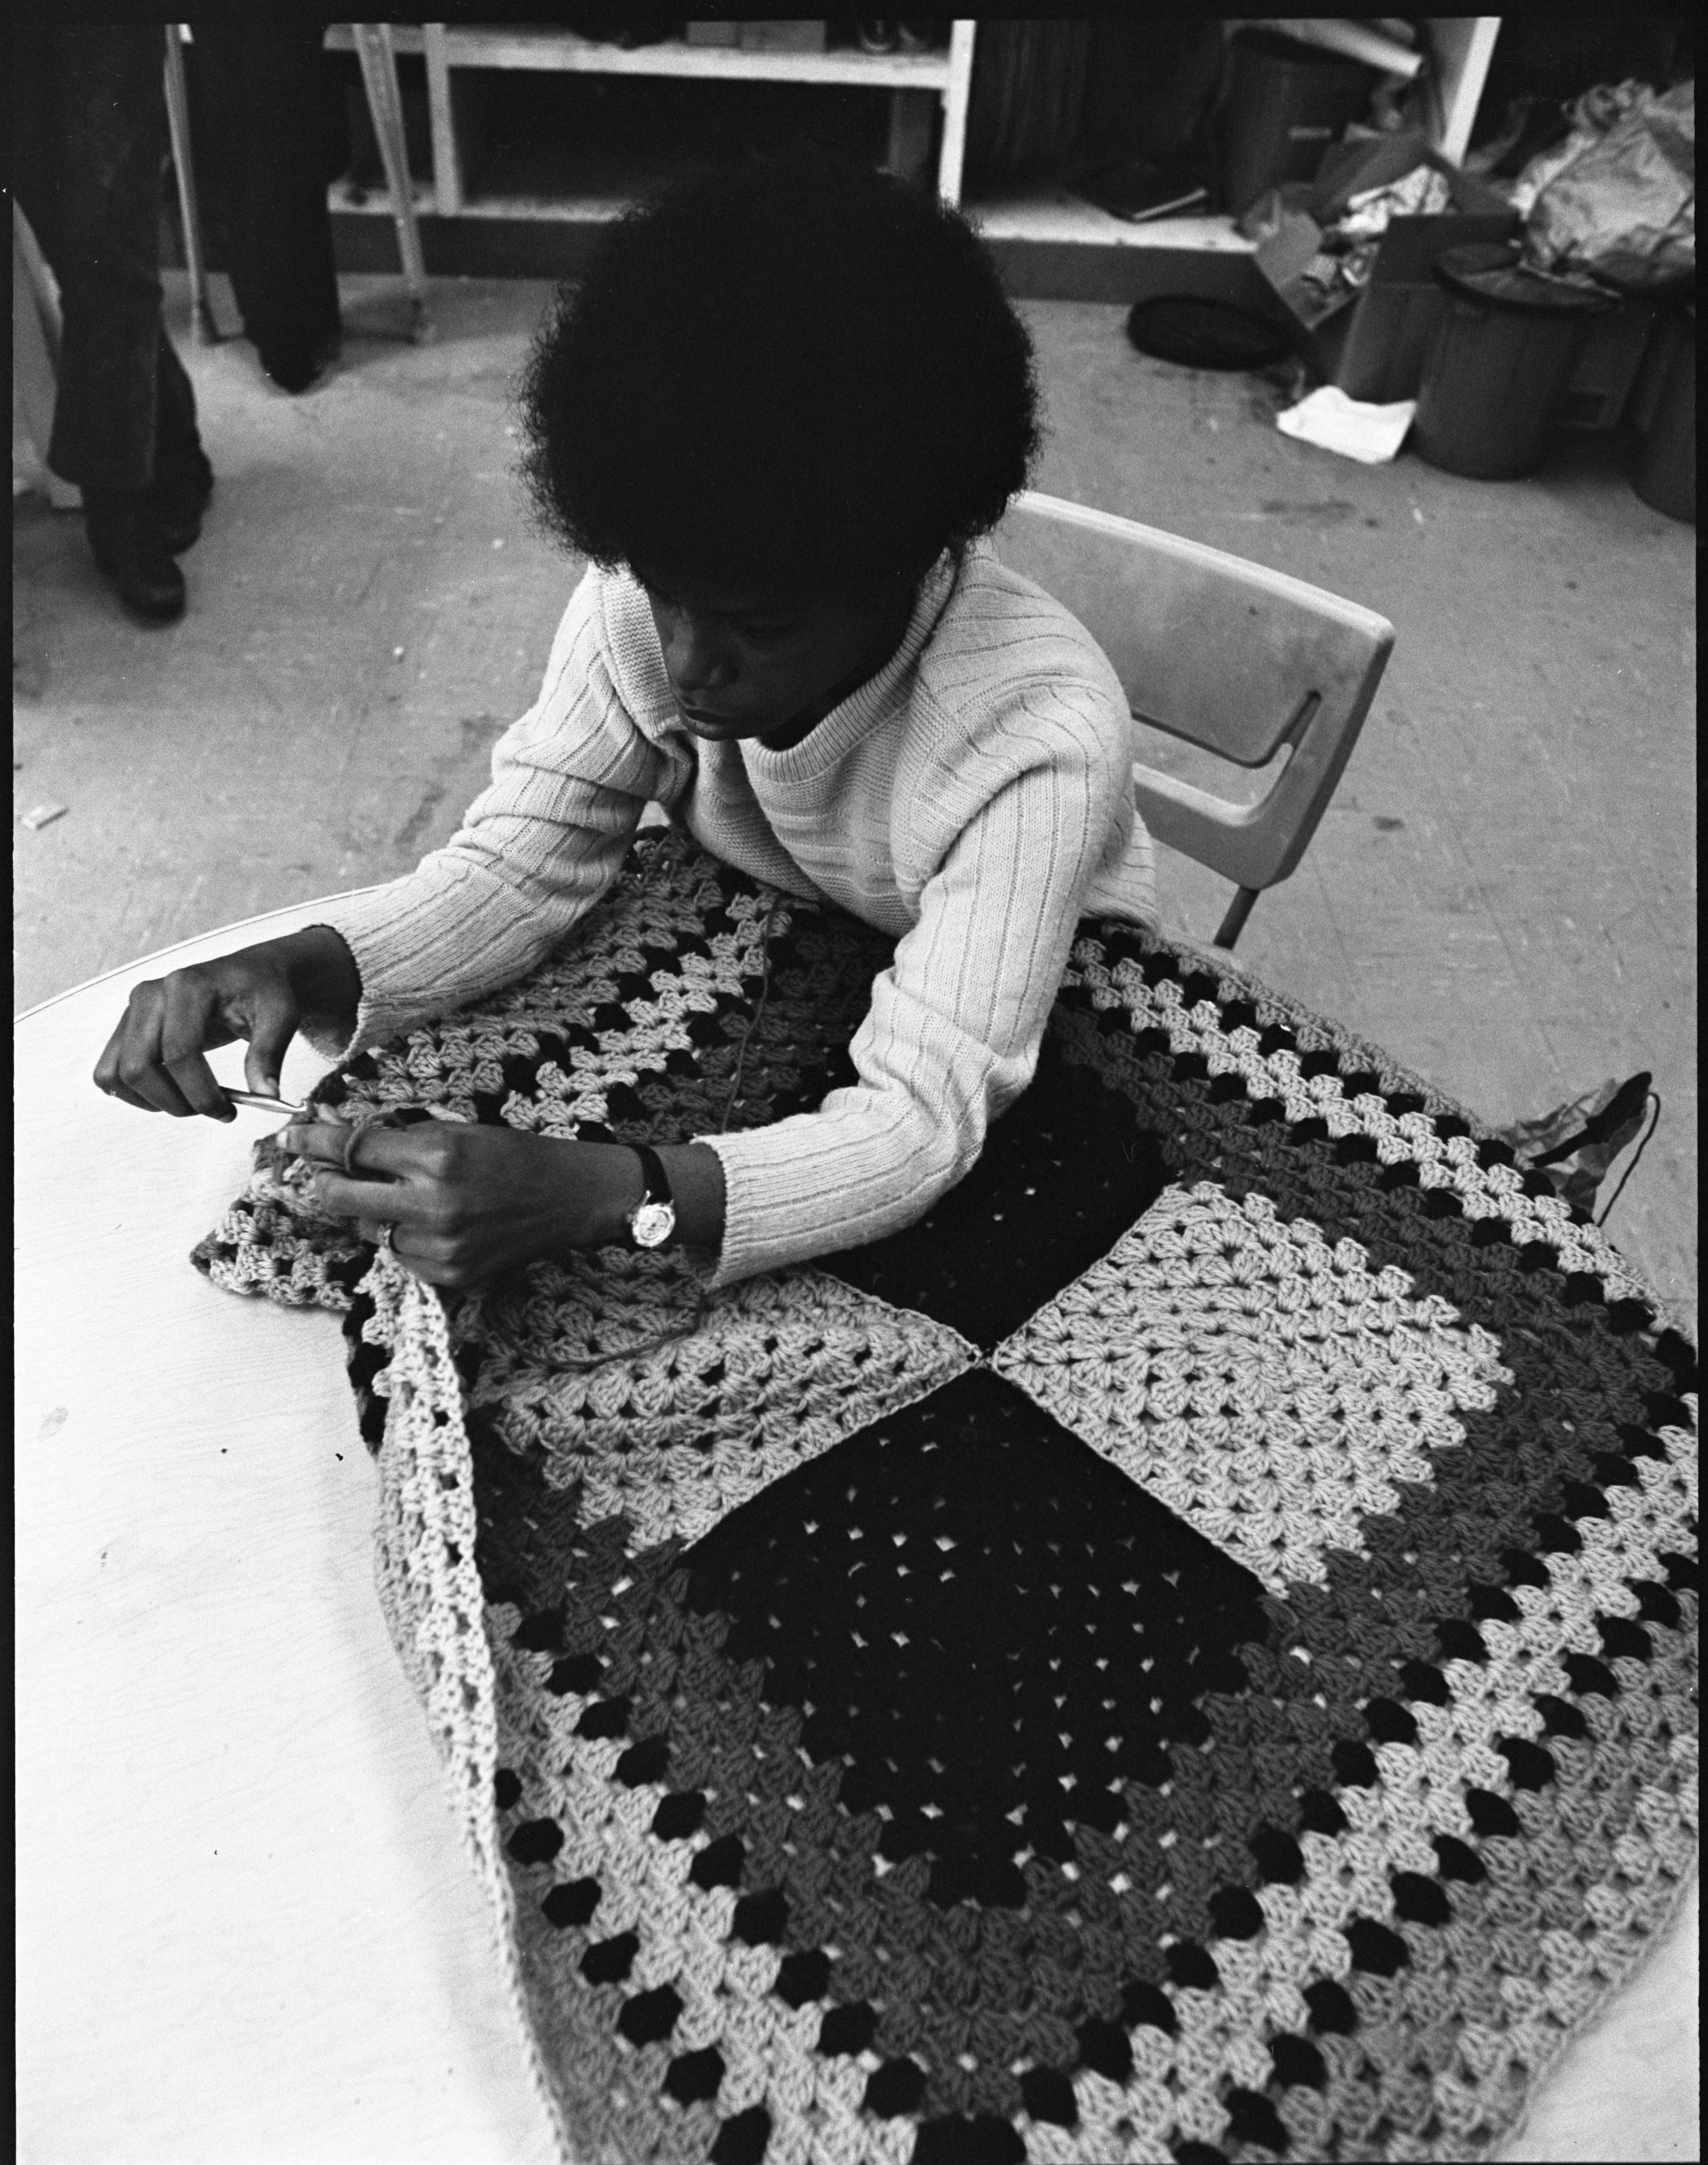 Marie Kelly Works On An Afghan In Community High School's Practical Art Program, April 1973 image